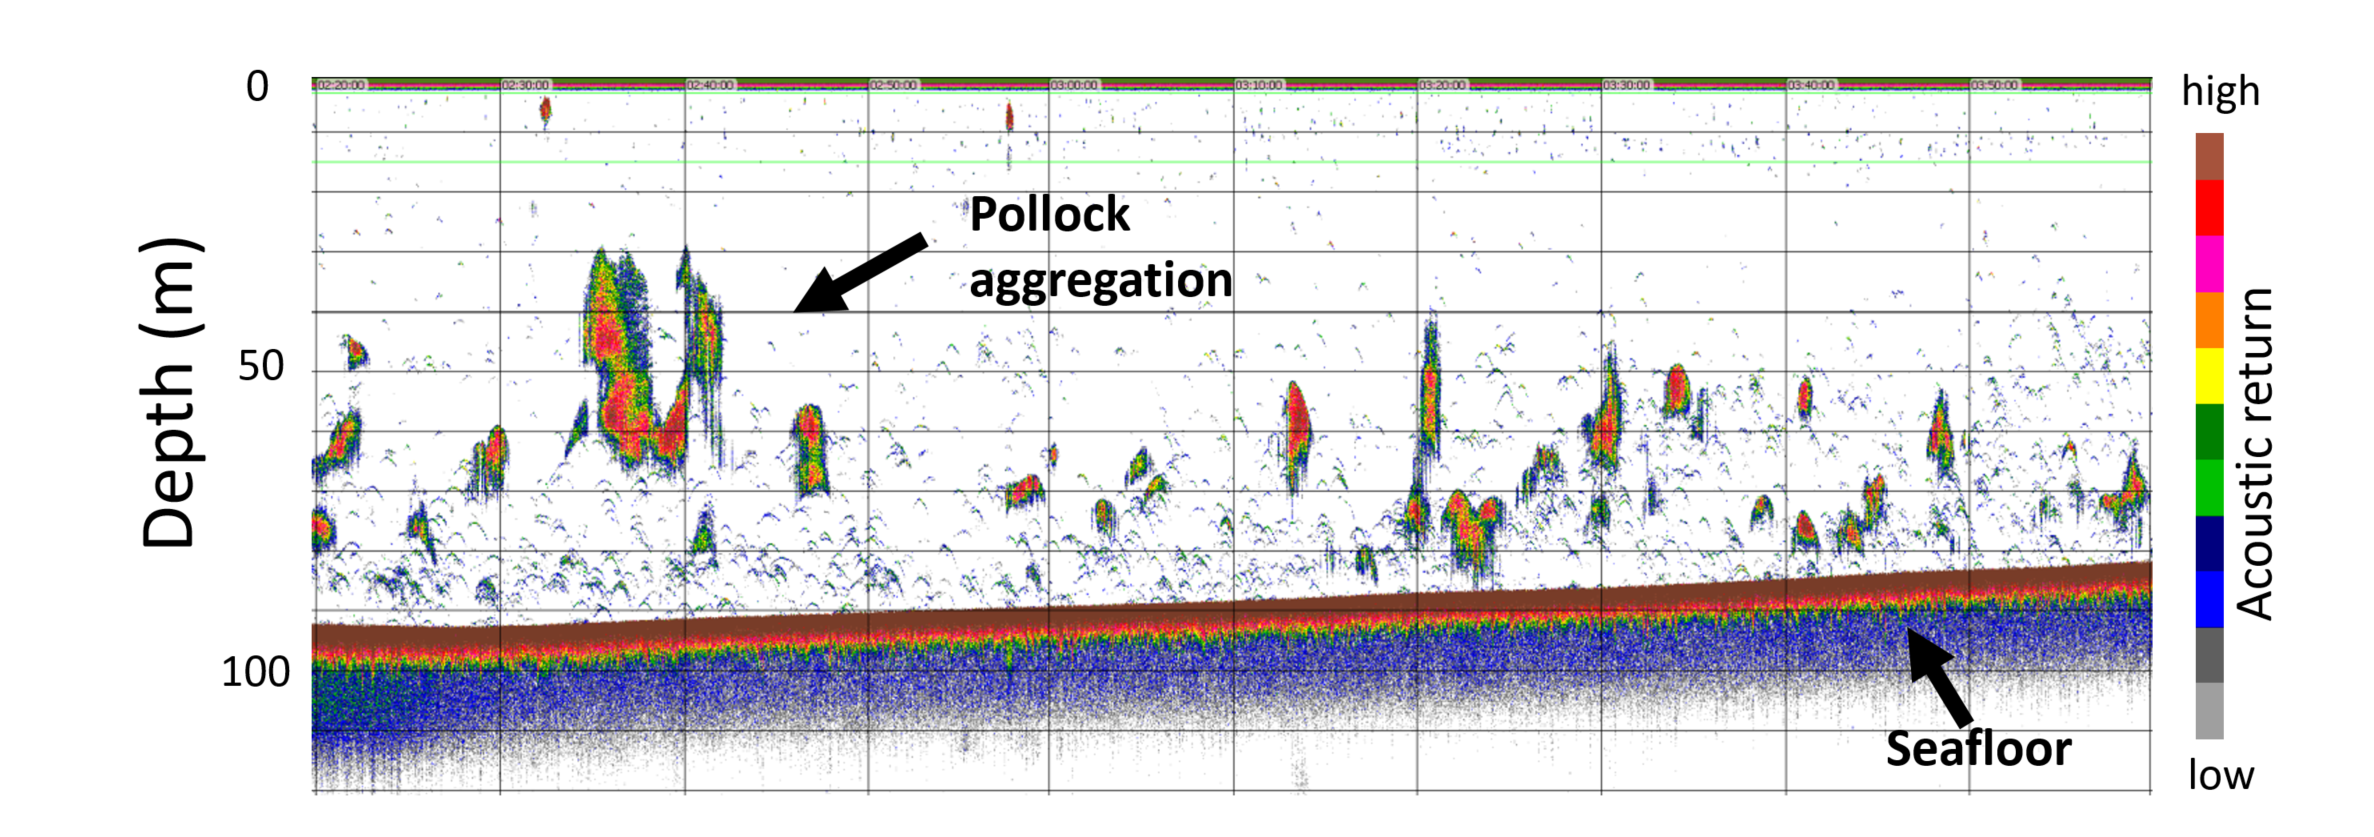 An echogram showing seafloor and Pollock aggregation depth.